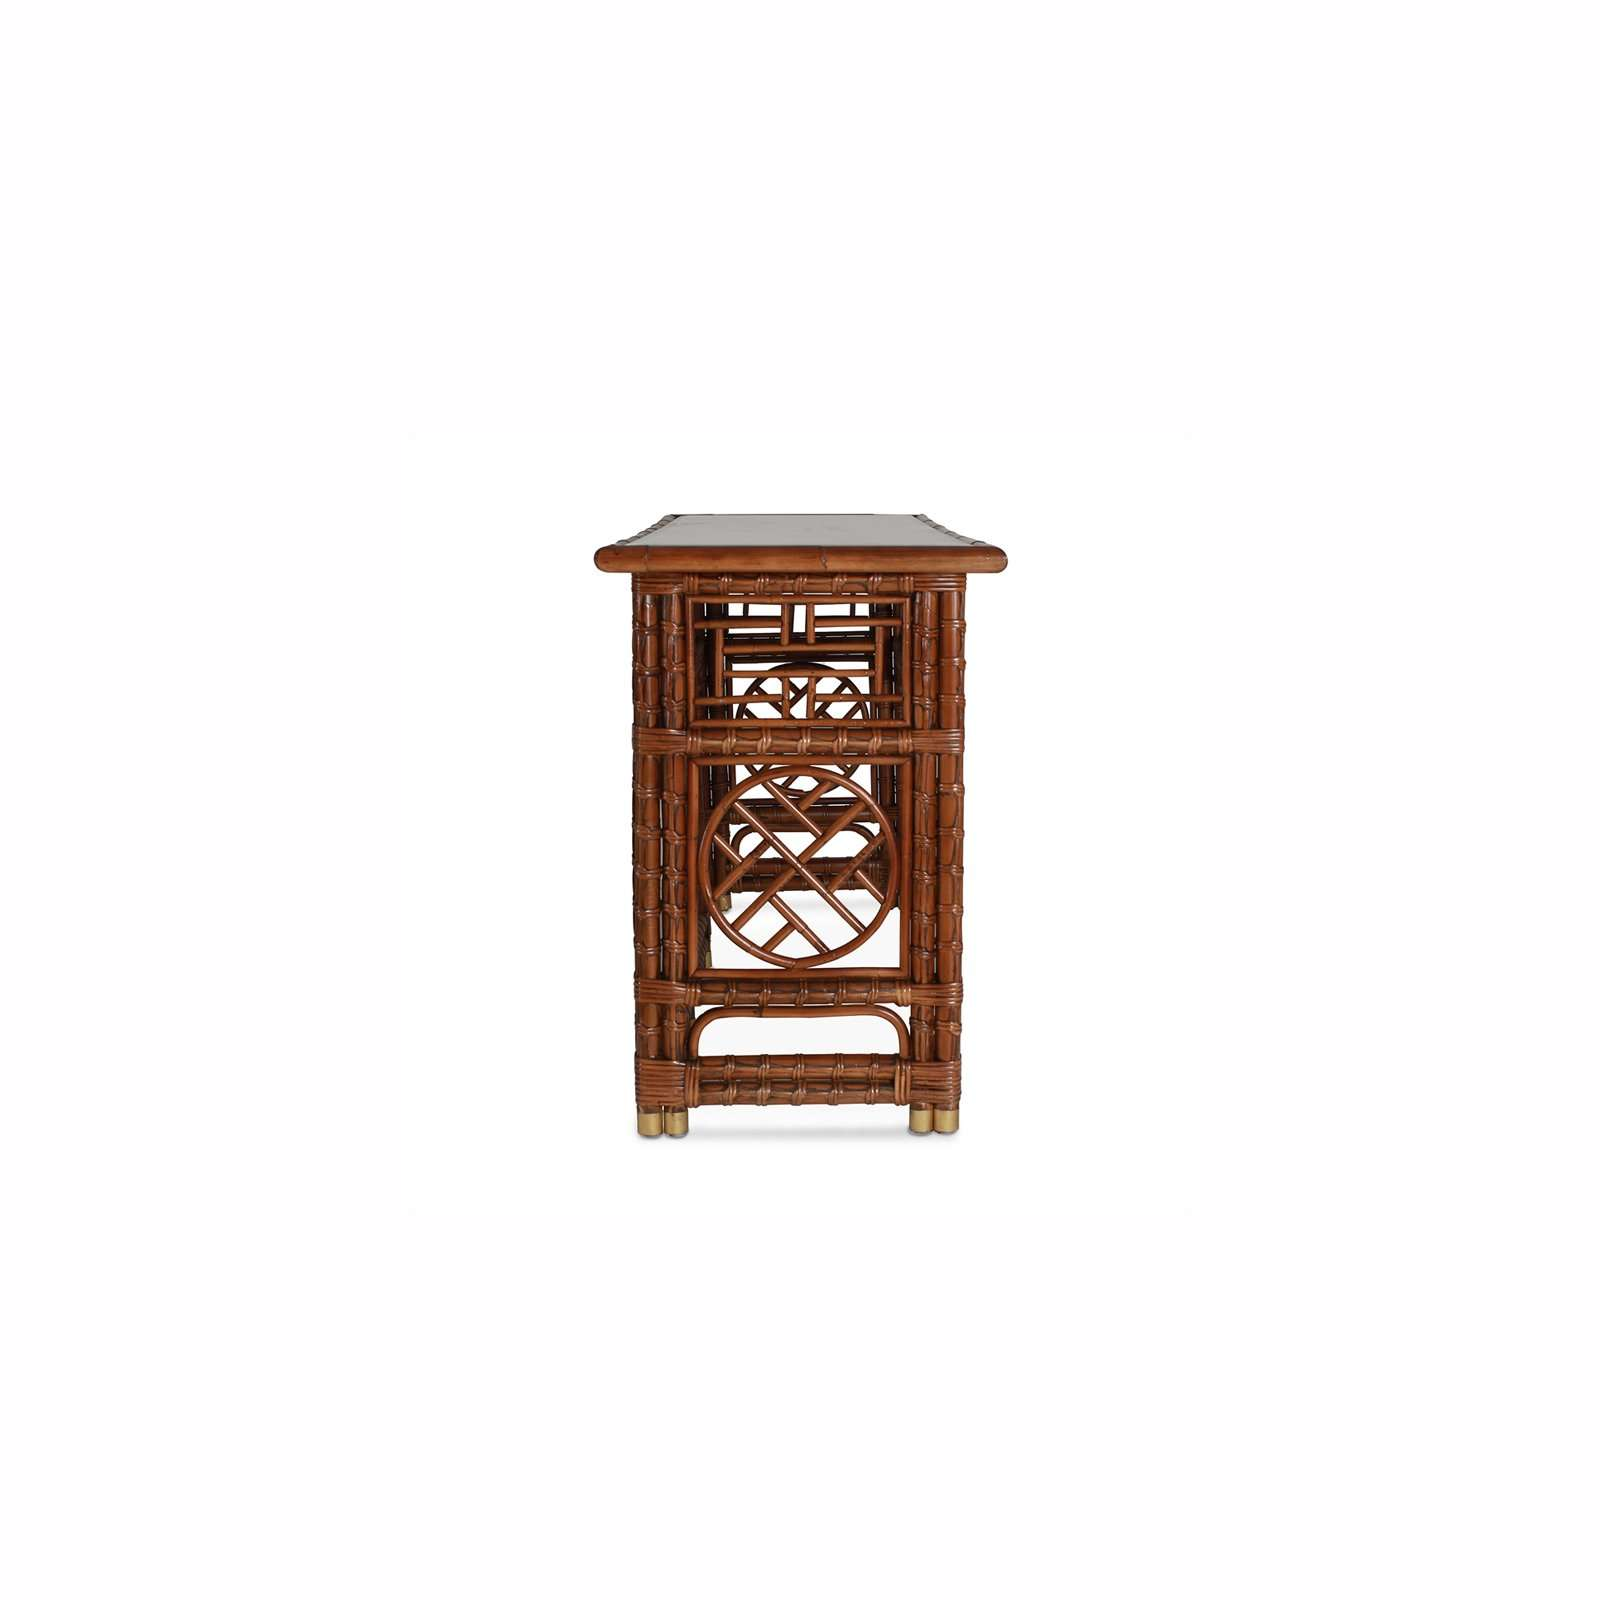 MANDALAY CONSOLE 2 - STUART MEMBERY HOME COLLECTION